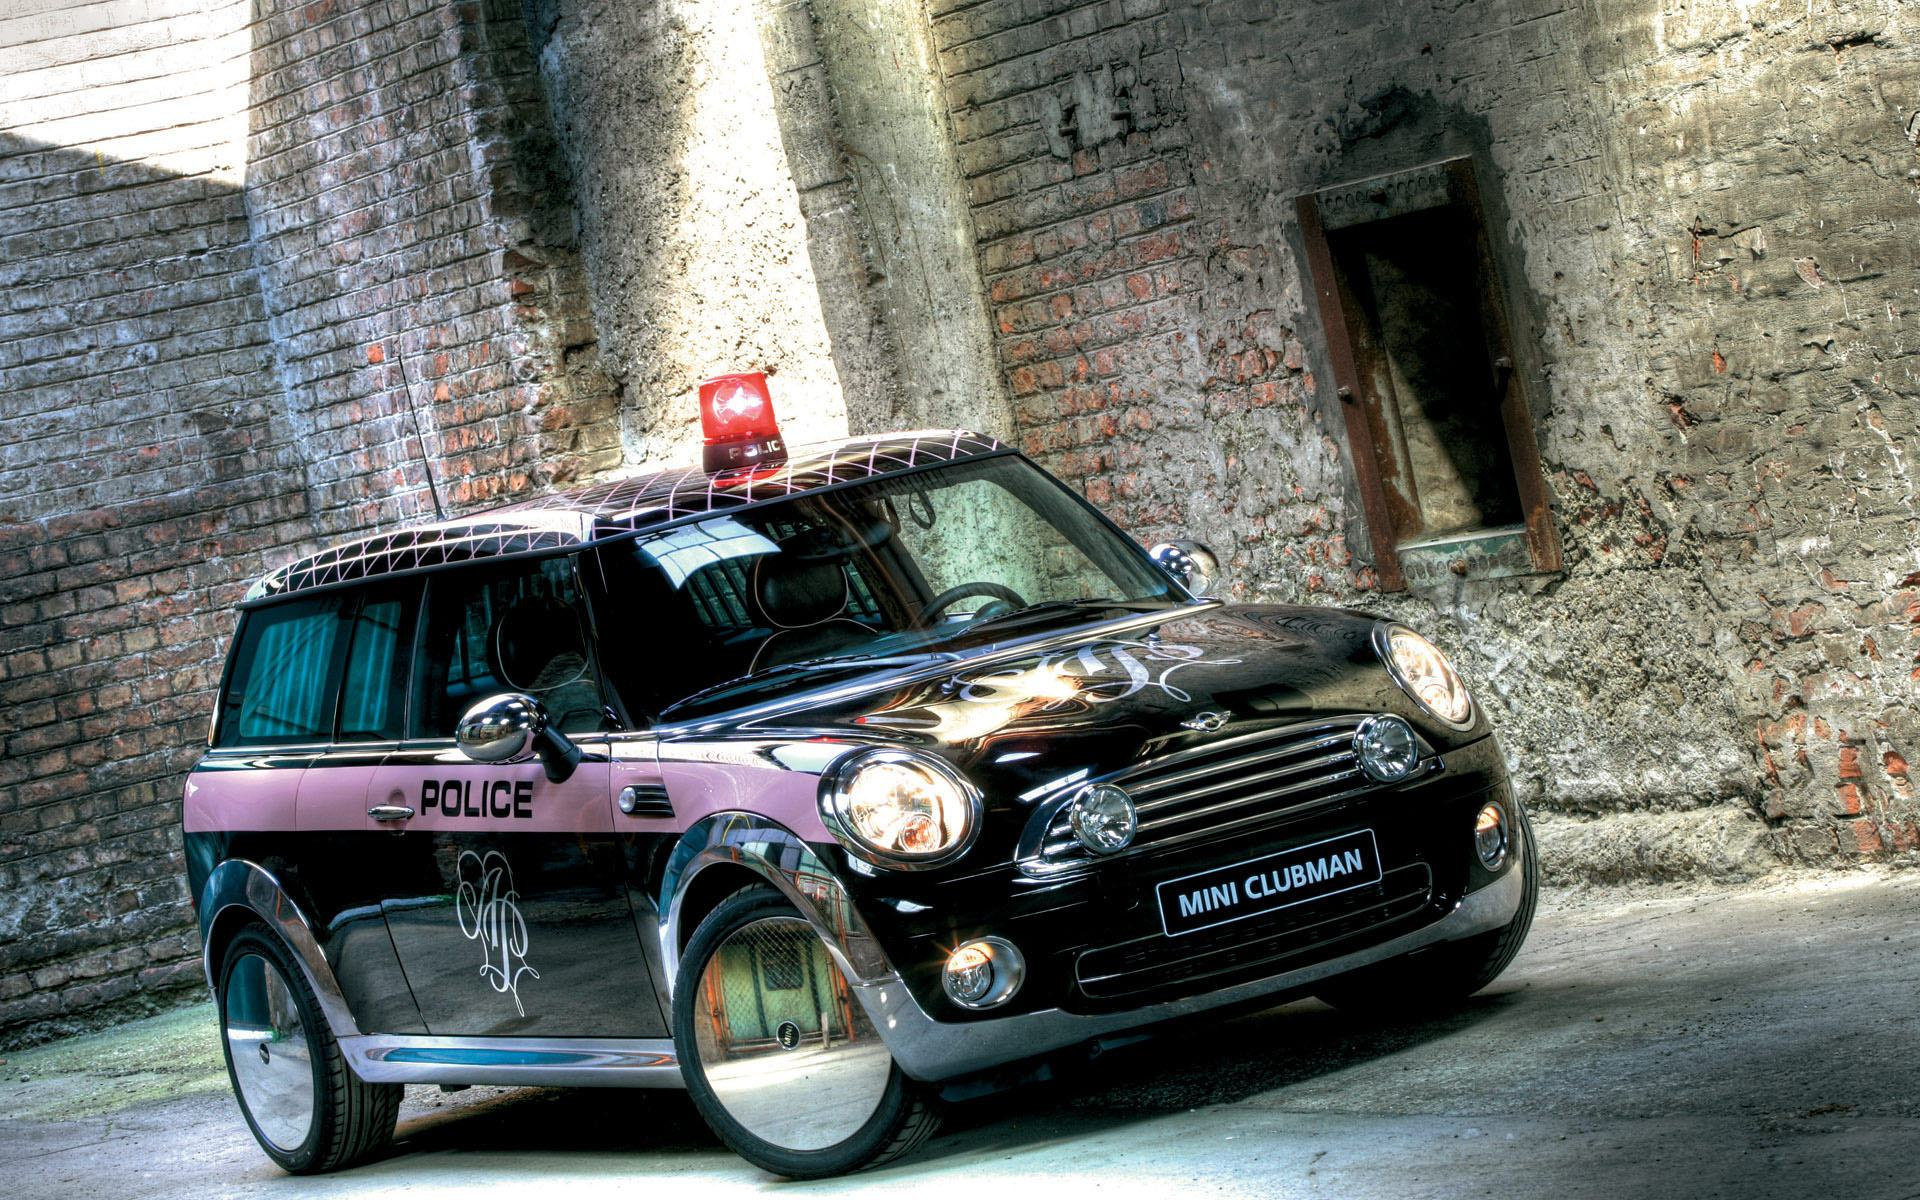 Обои Mini clubman life-ball 1920x1200